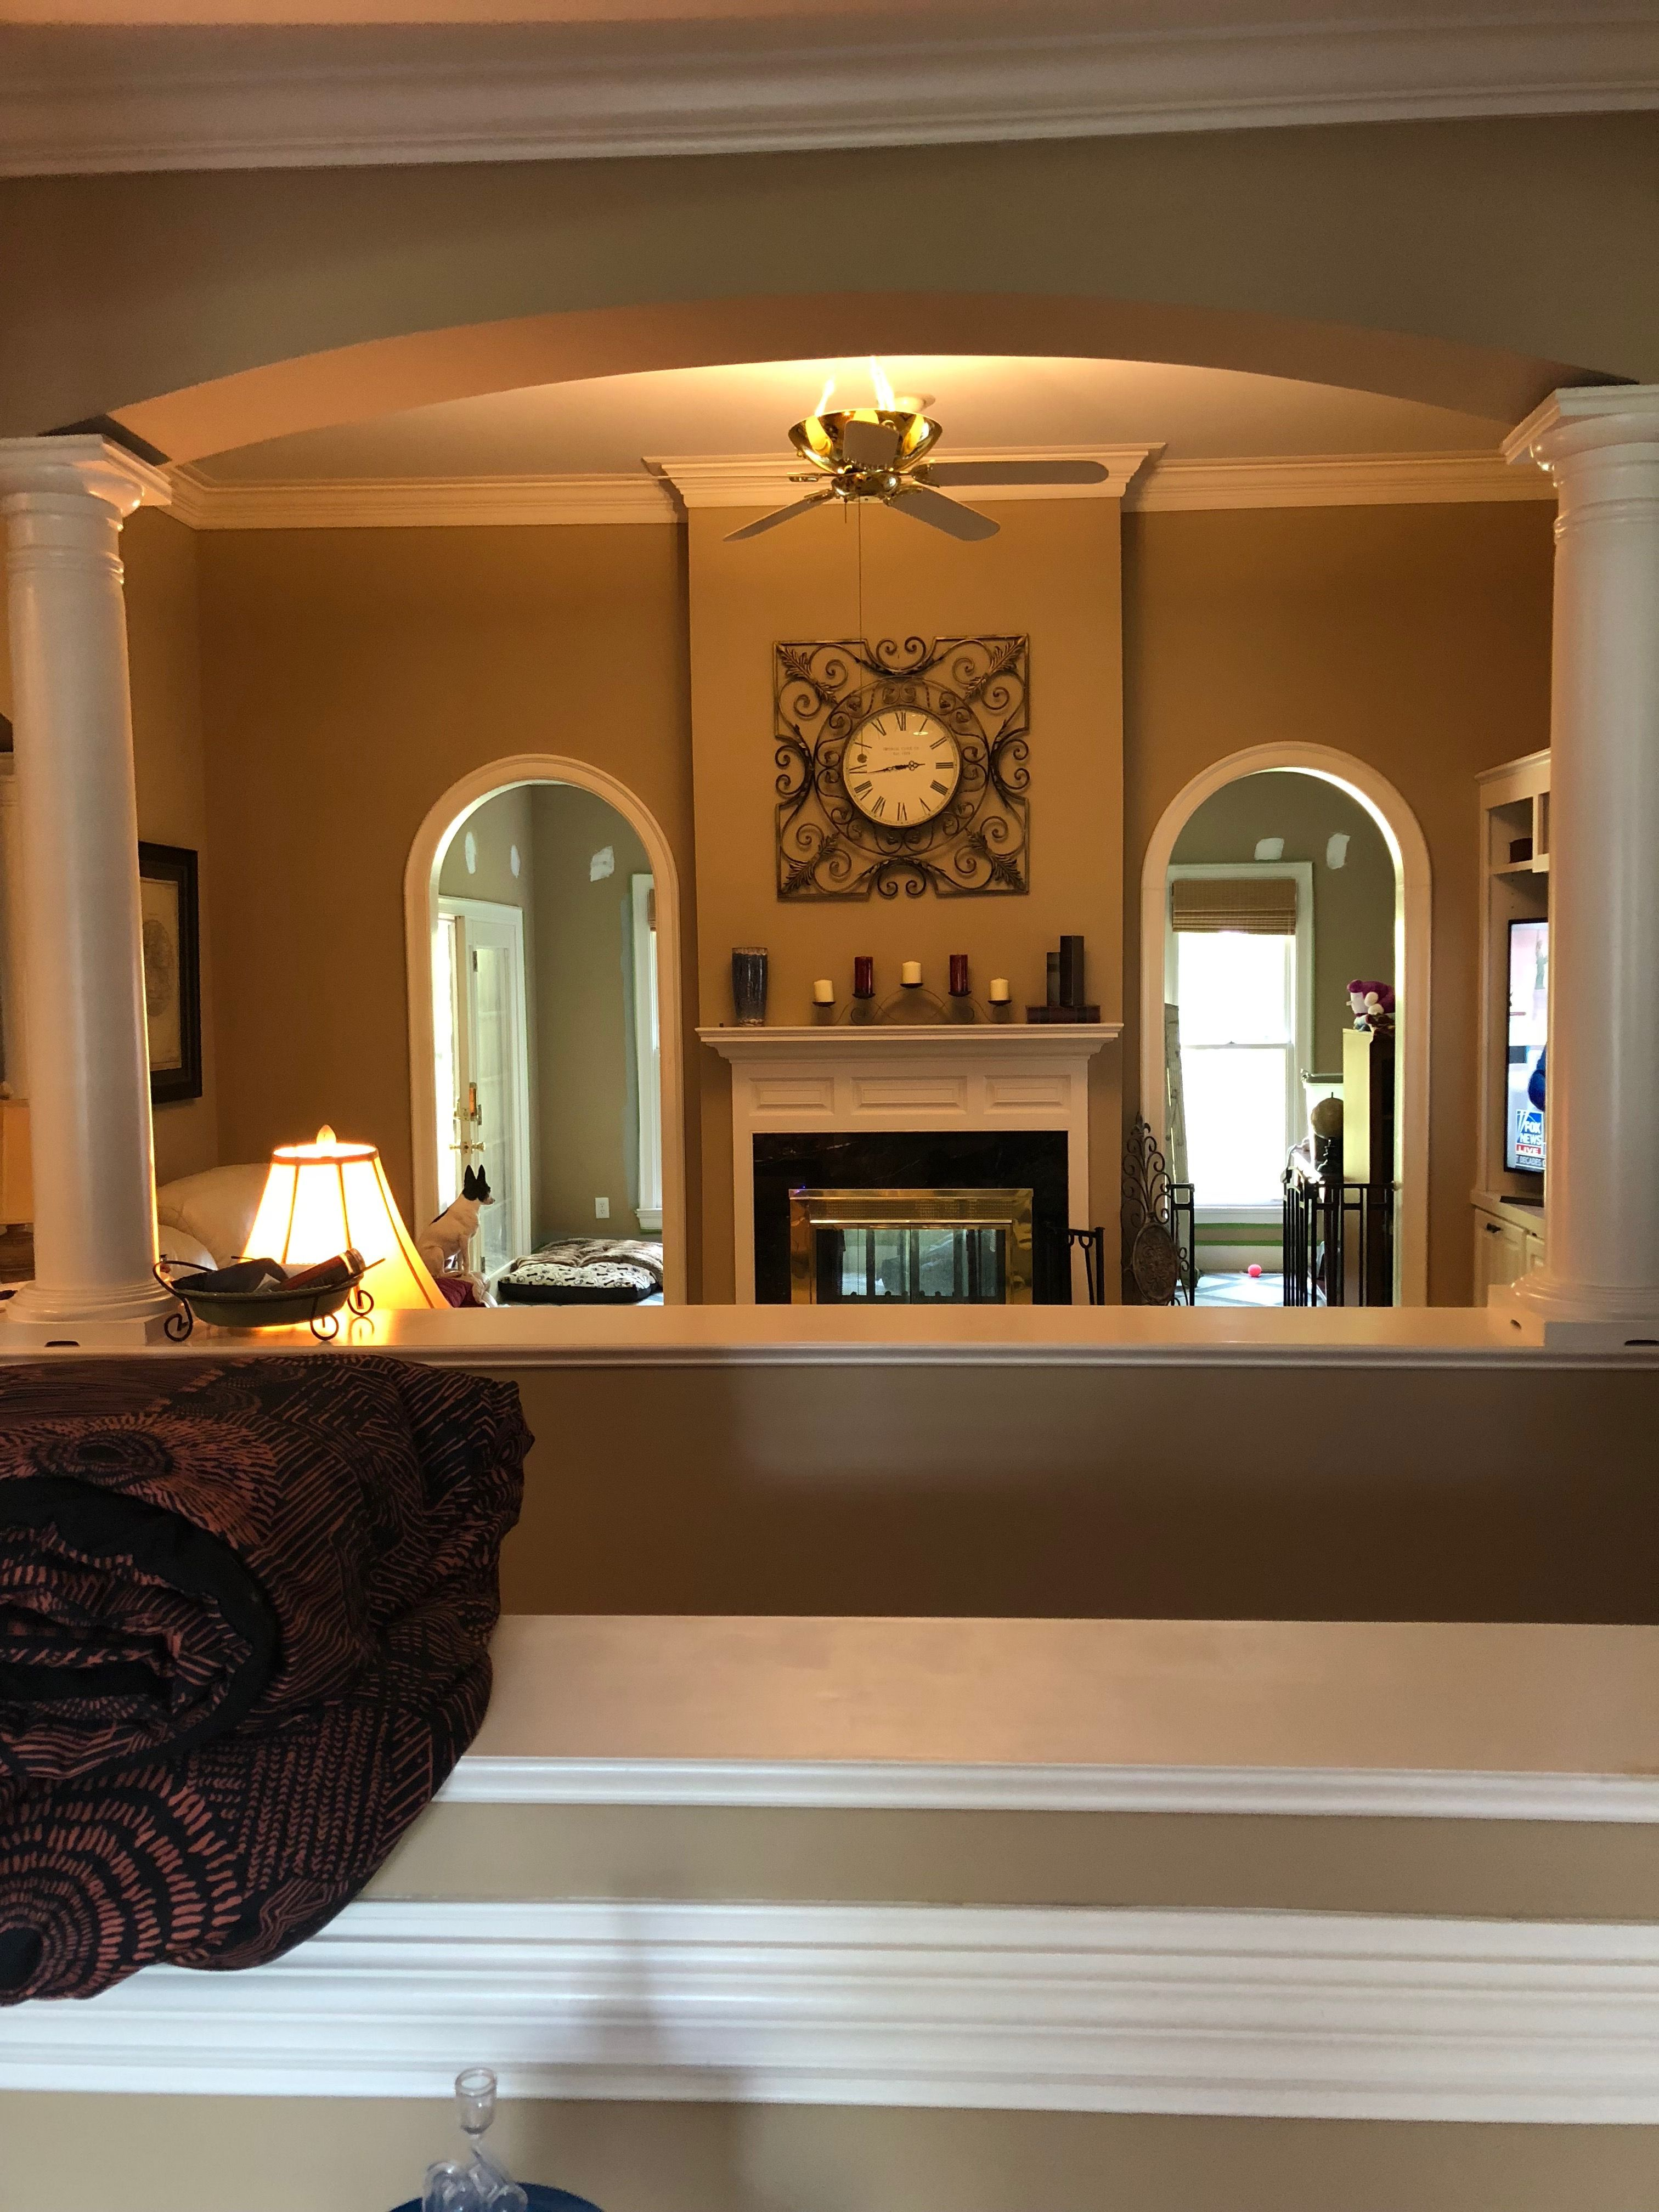 Before 6 Half Wall Edging Living Room Note Arched Openings Half Walls Home Home Decor